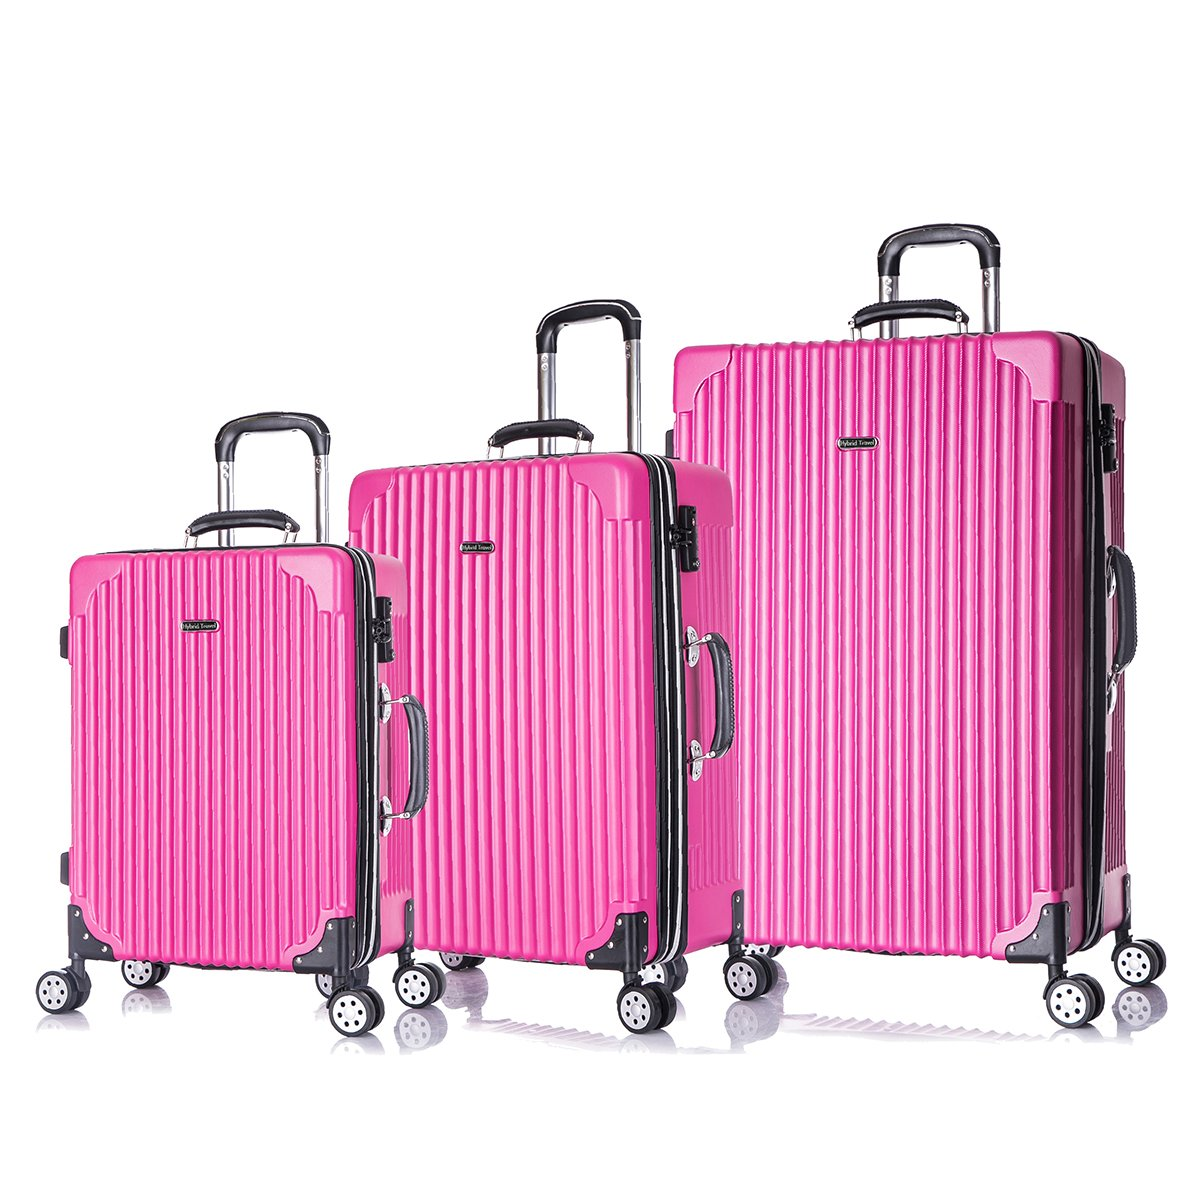 3 PC Luggage Set Durable Phone Charge Feature Suitecase LUG3 LY69 HOT PINK